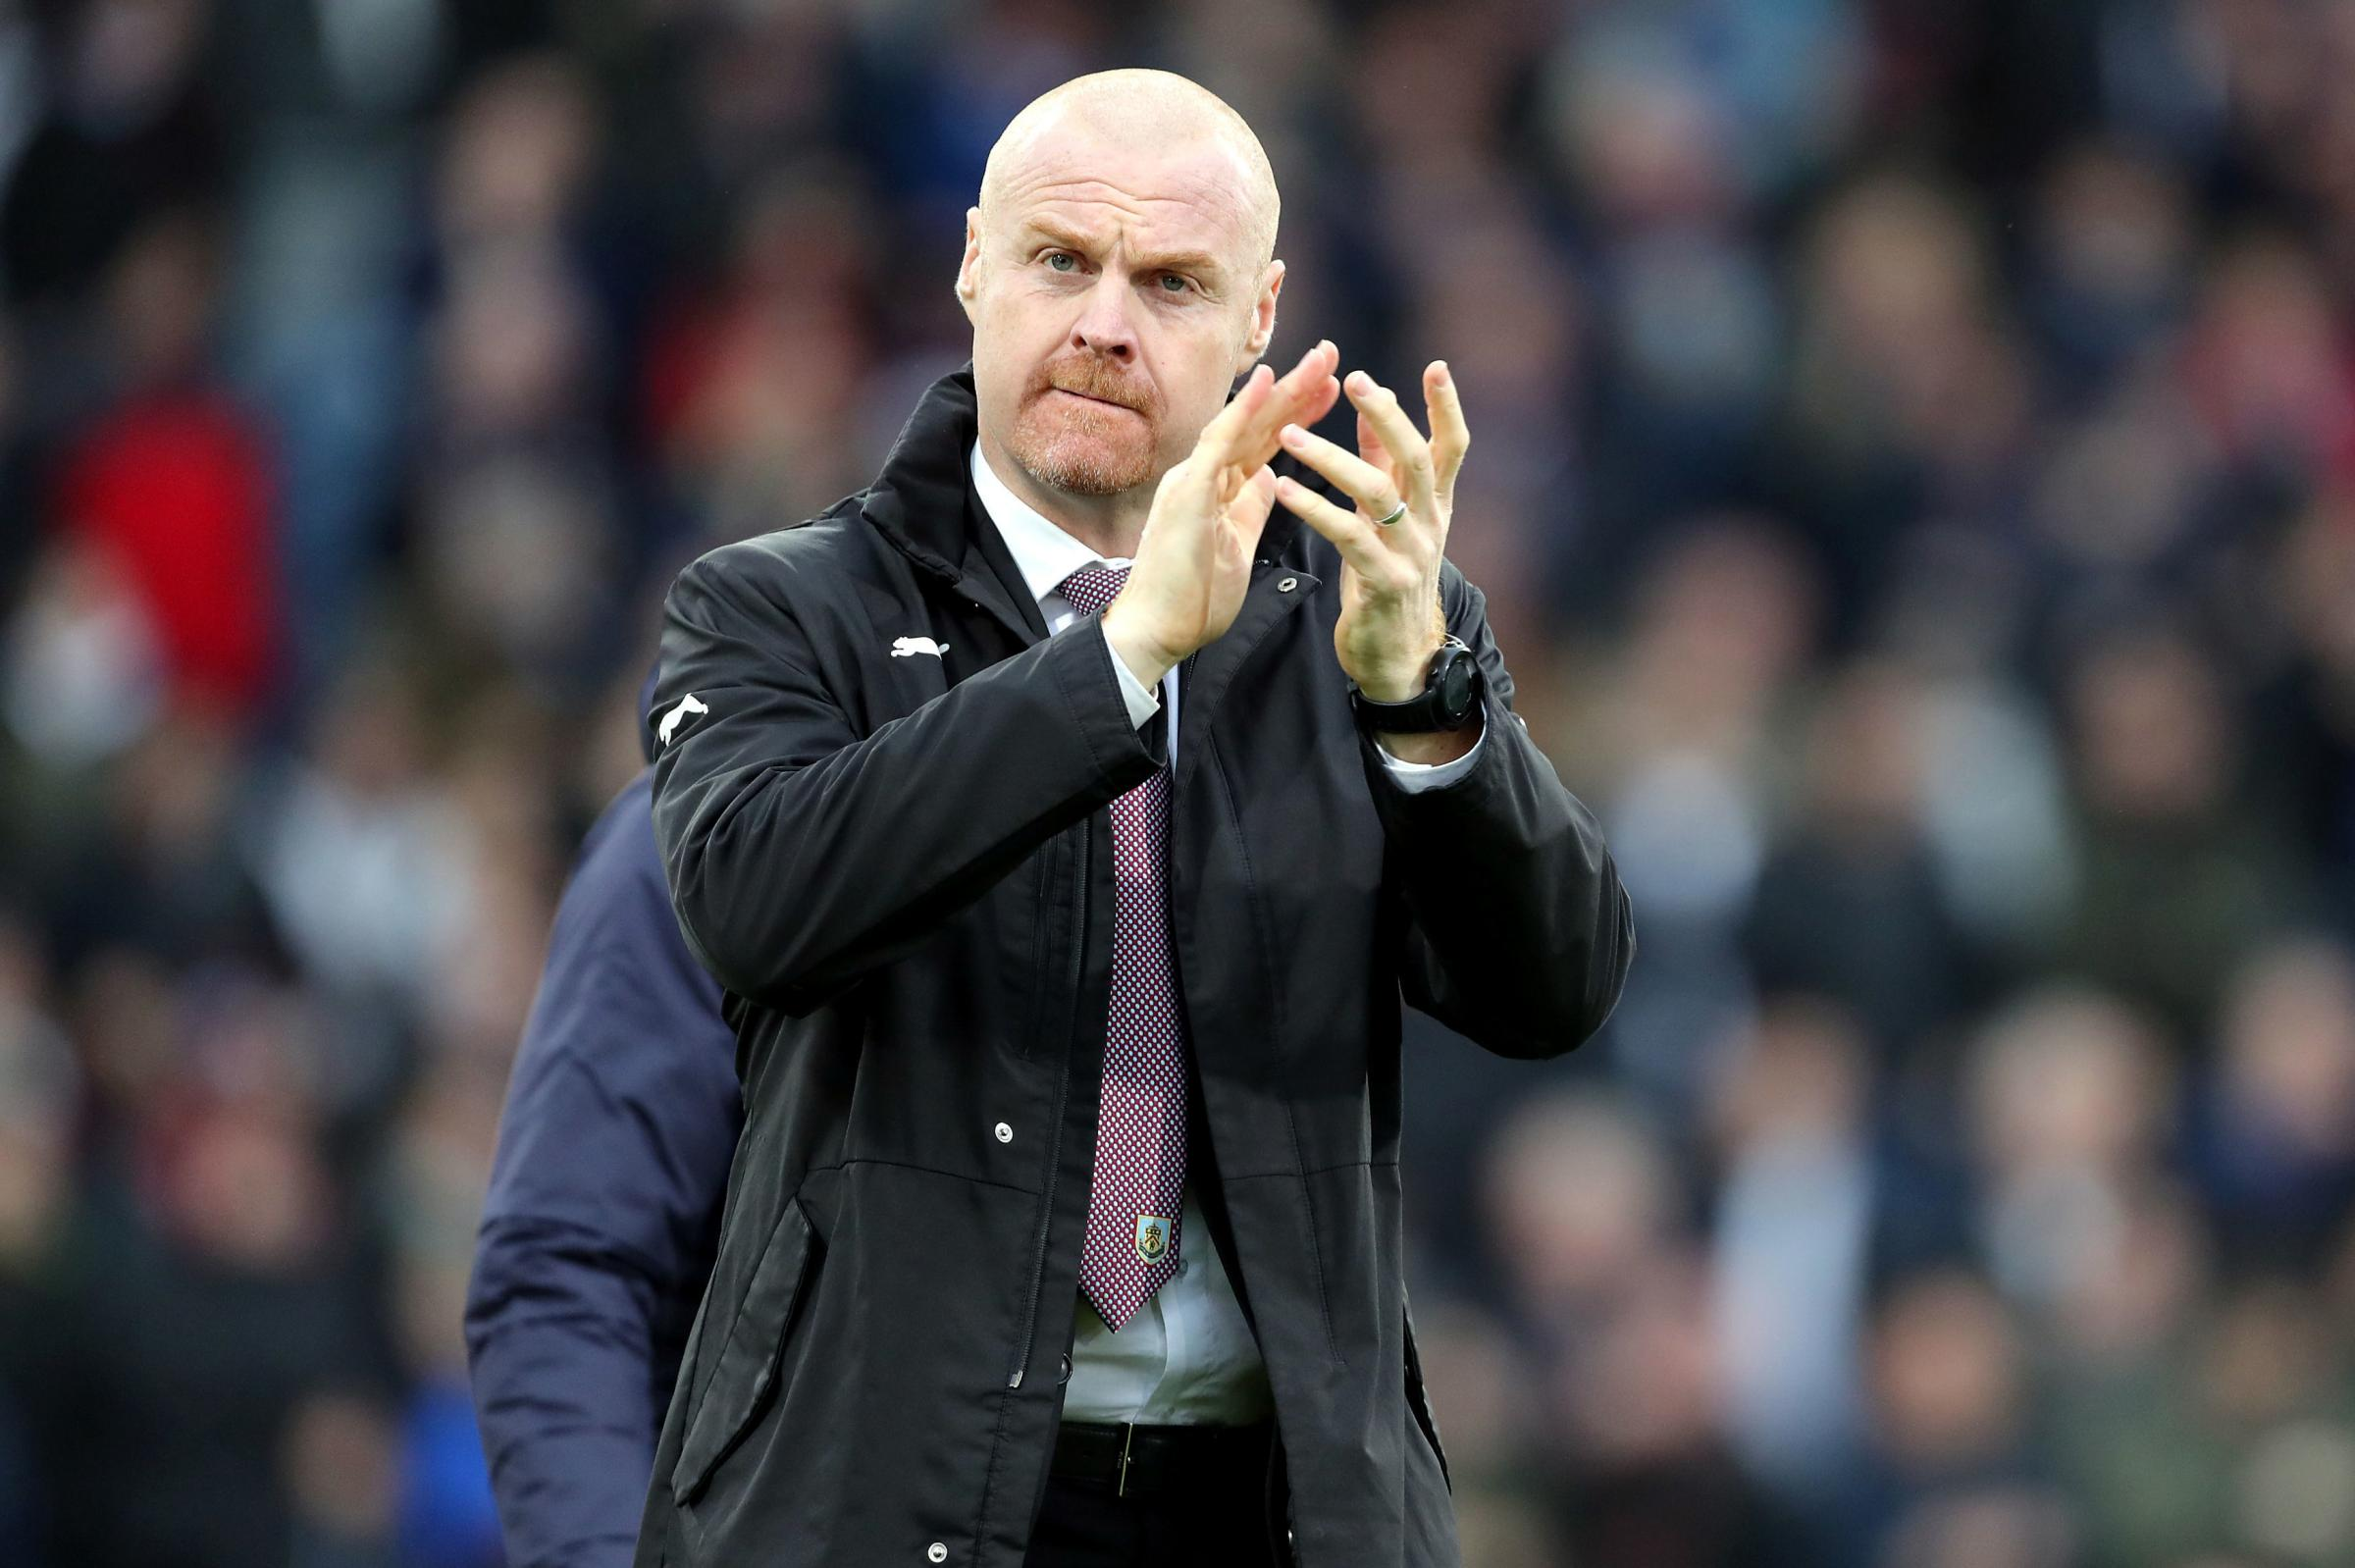 File photo dated 30-12-2018 of Burnley manager Sean Dyche. PRESS ASSOCIATION Photo. Issue date: Monday December 31, 2018. Burnley manager Sean Dyche accepts he has